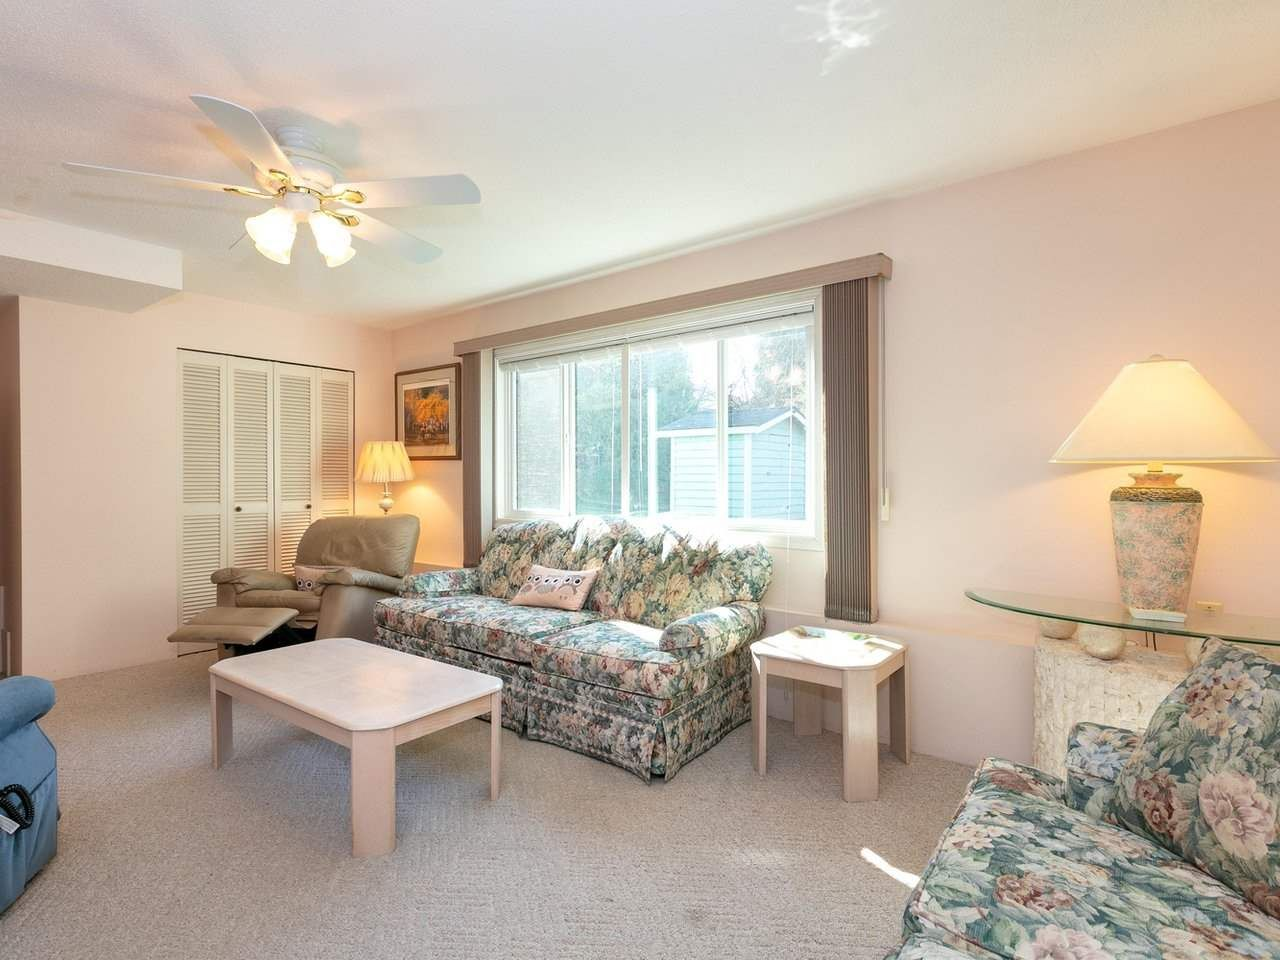 Photo 9: Photos: 1422 GROVER Avenue in Coquitlam: Central Coquitlam House for sale : MLS®# R2568207